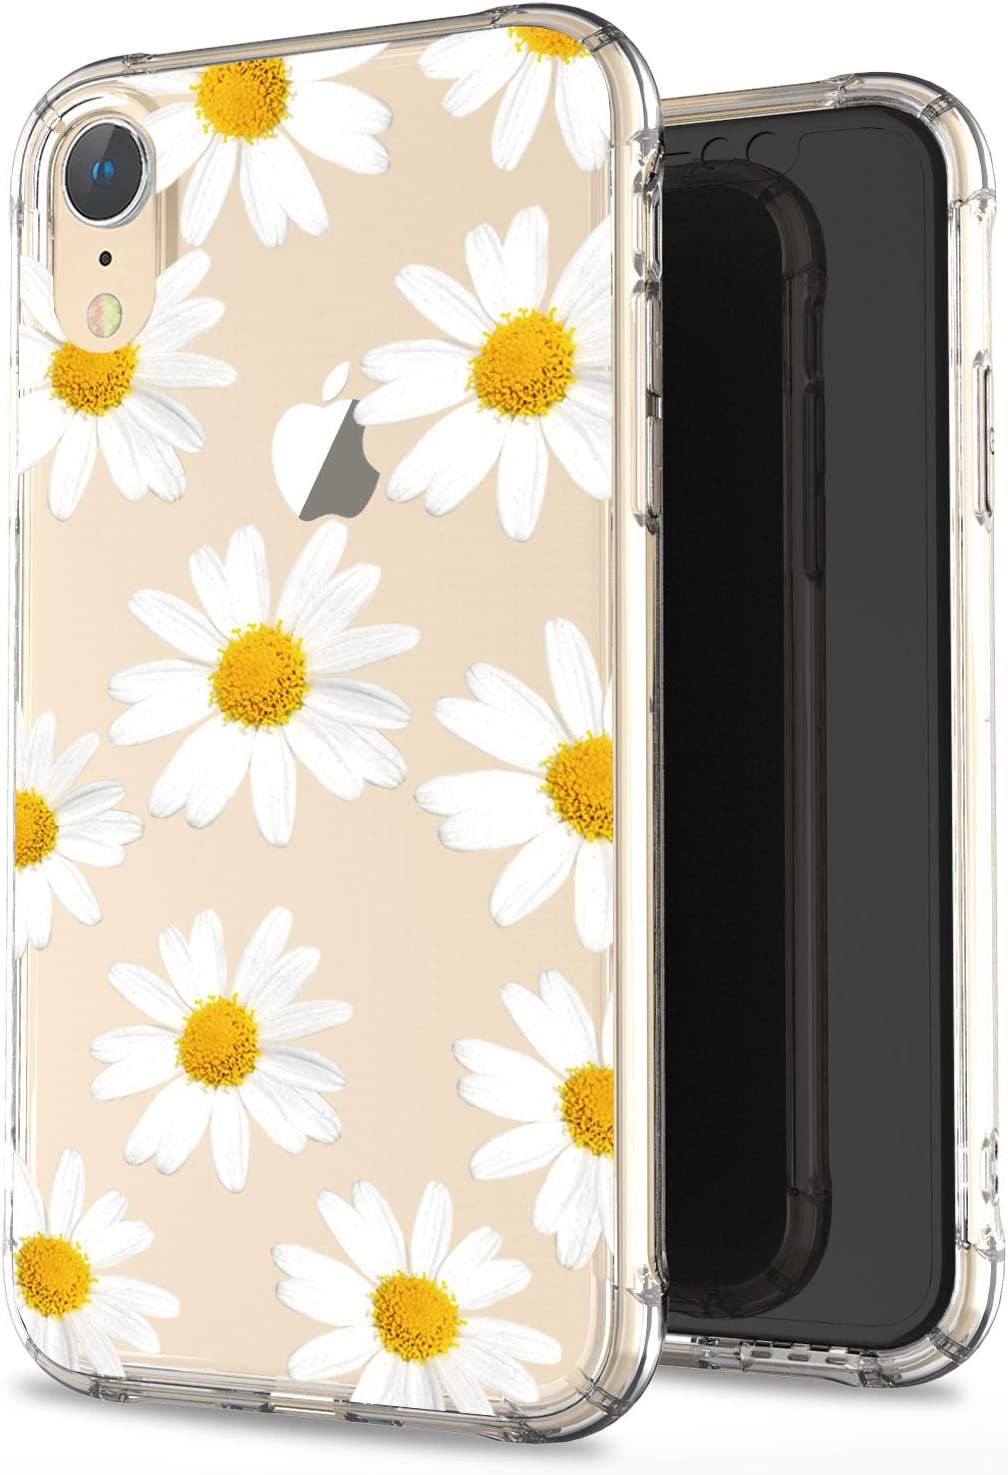 JIAXIUFEN Clear Case Cute Chrysanthemum Slim Shockproof Flower Floral Desgin Soft Flexible TPU Silicone Back Cover Phone Case for iPhone XR 2018 6.1 inch